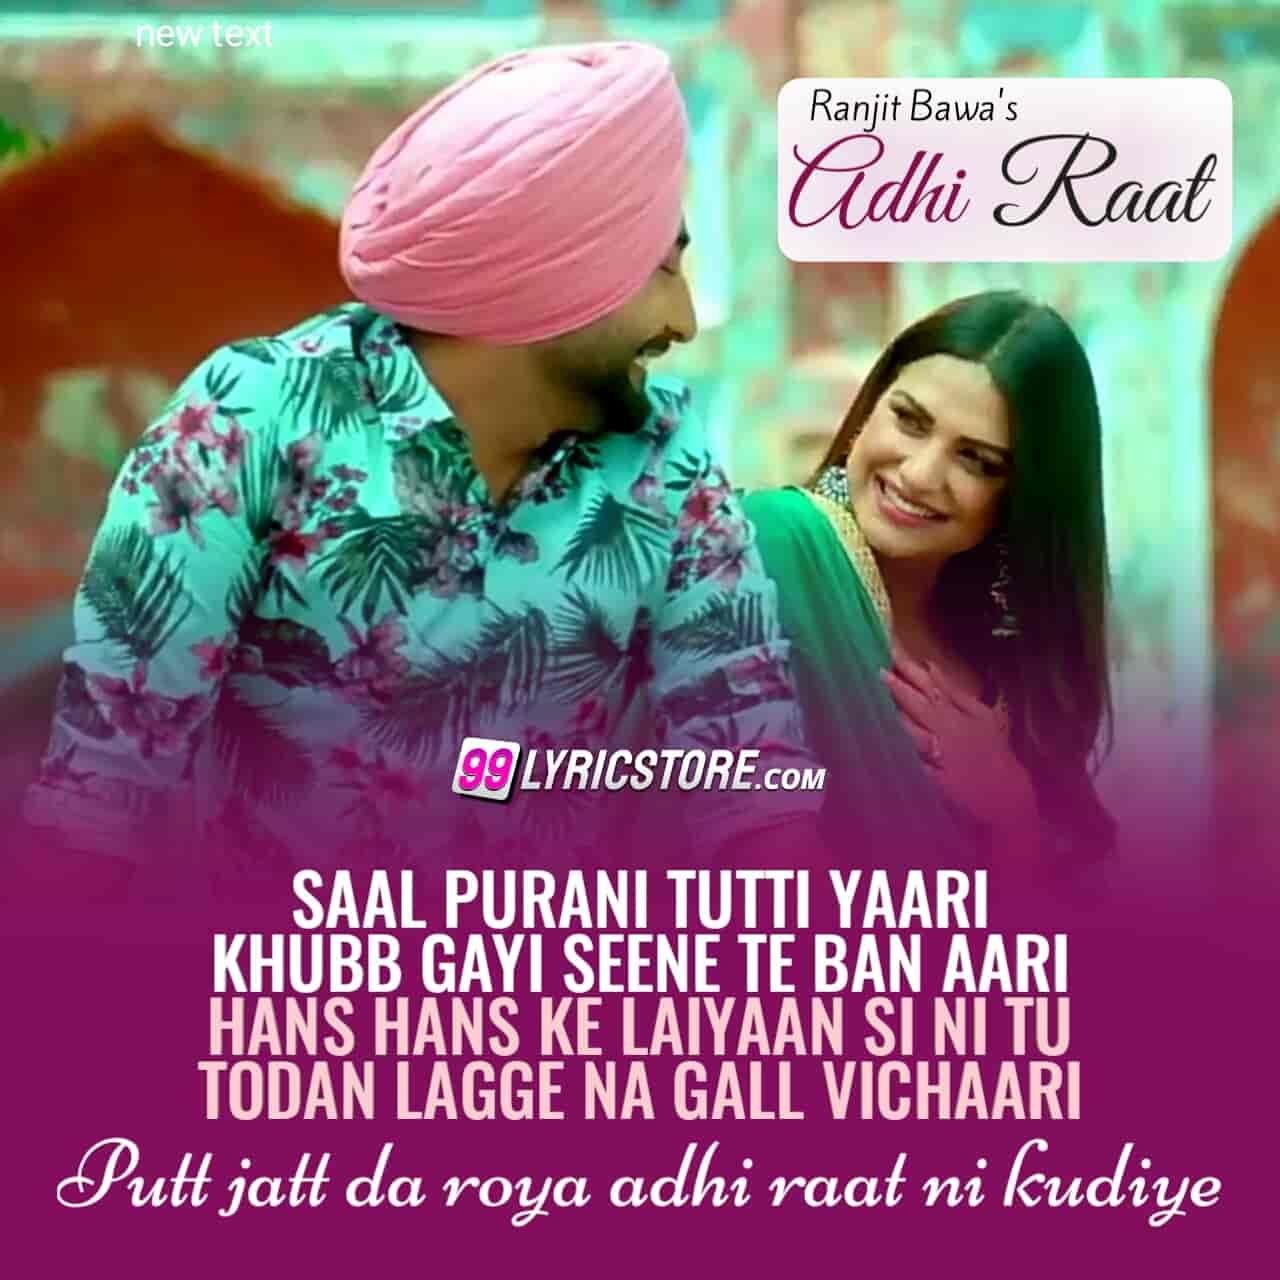 Adhi Raat sad punjabi song lyrics sung by Ranjit Bawa